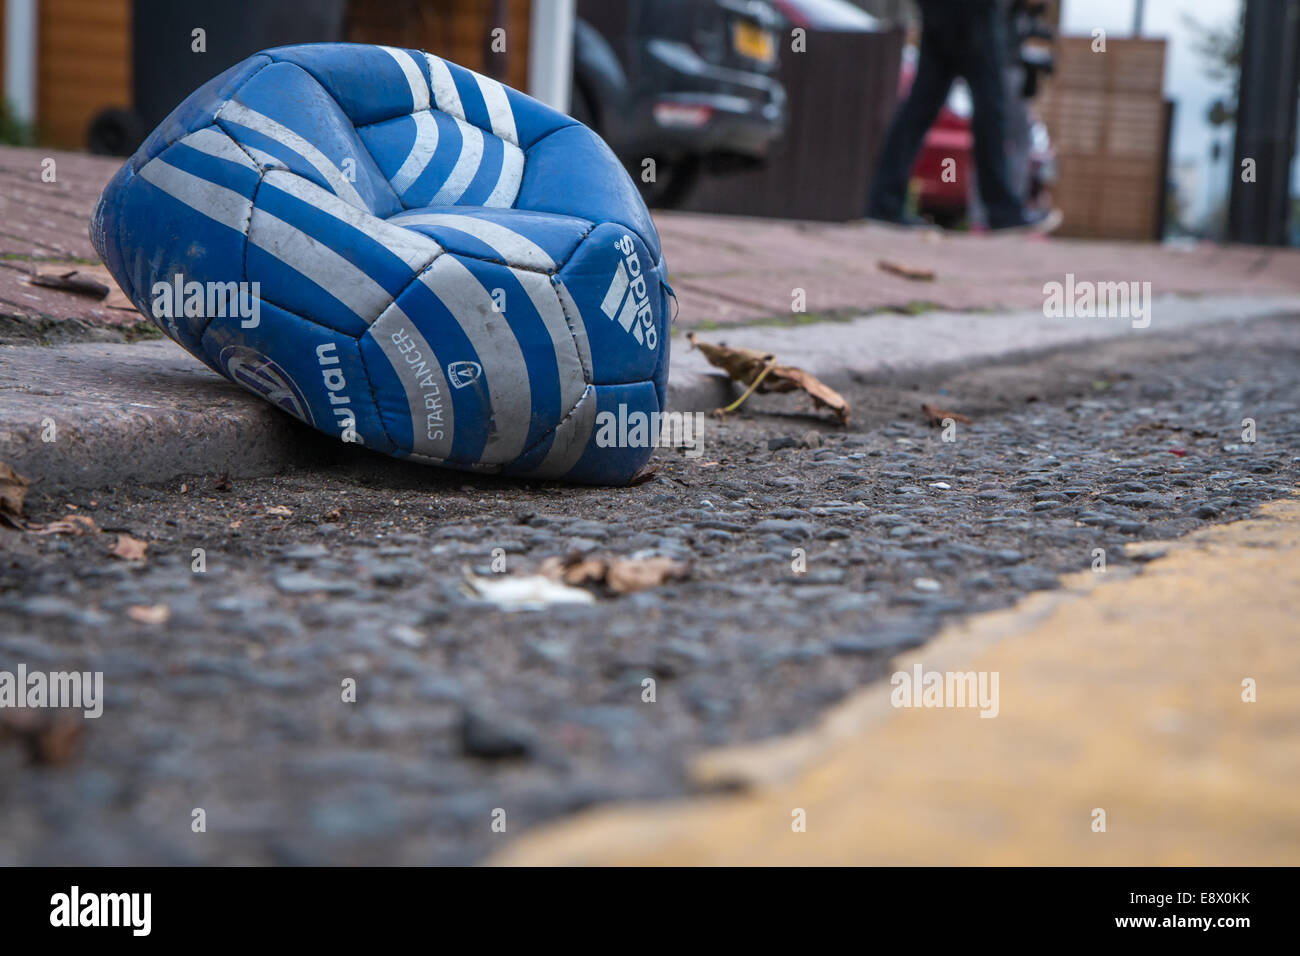 deflated football in the gutter - Stock Image